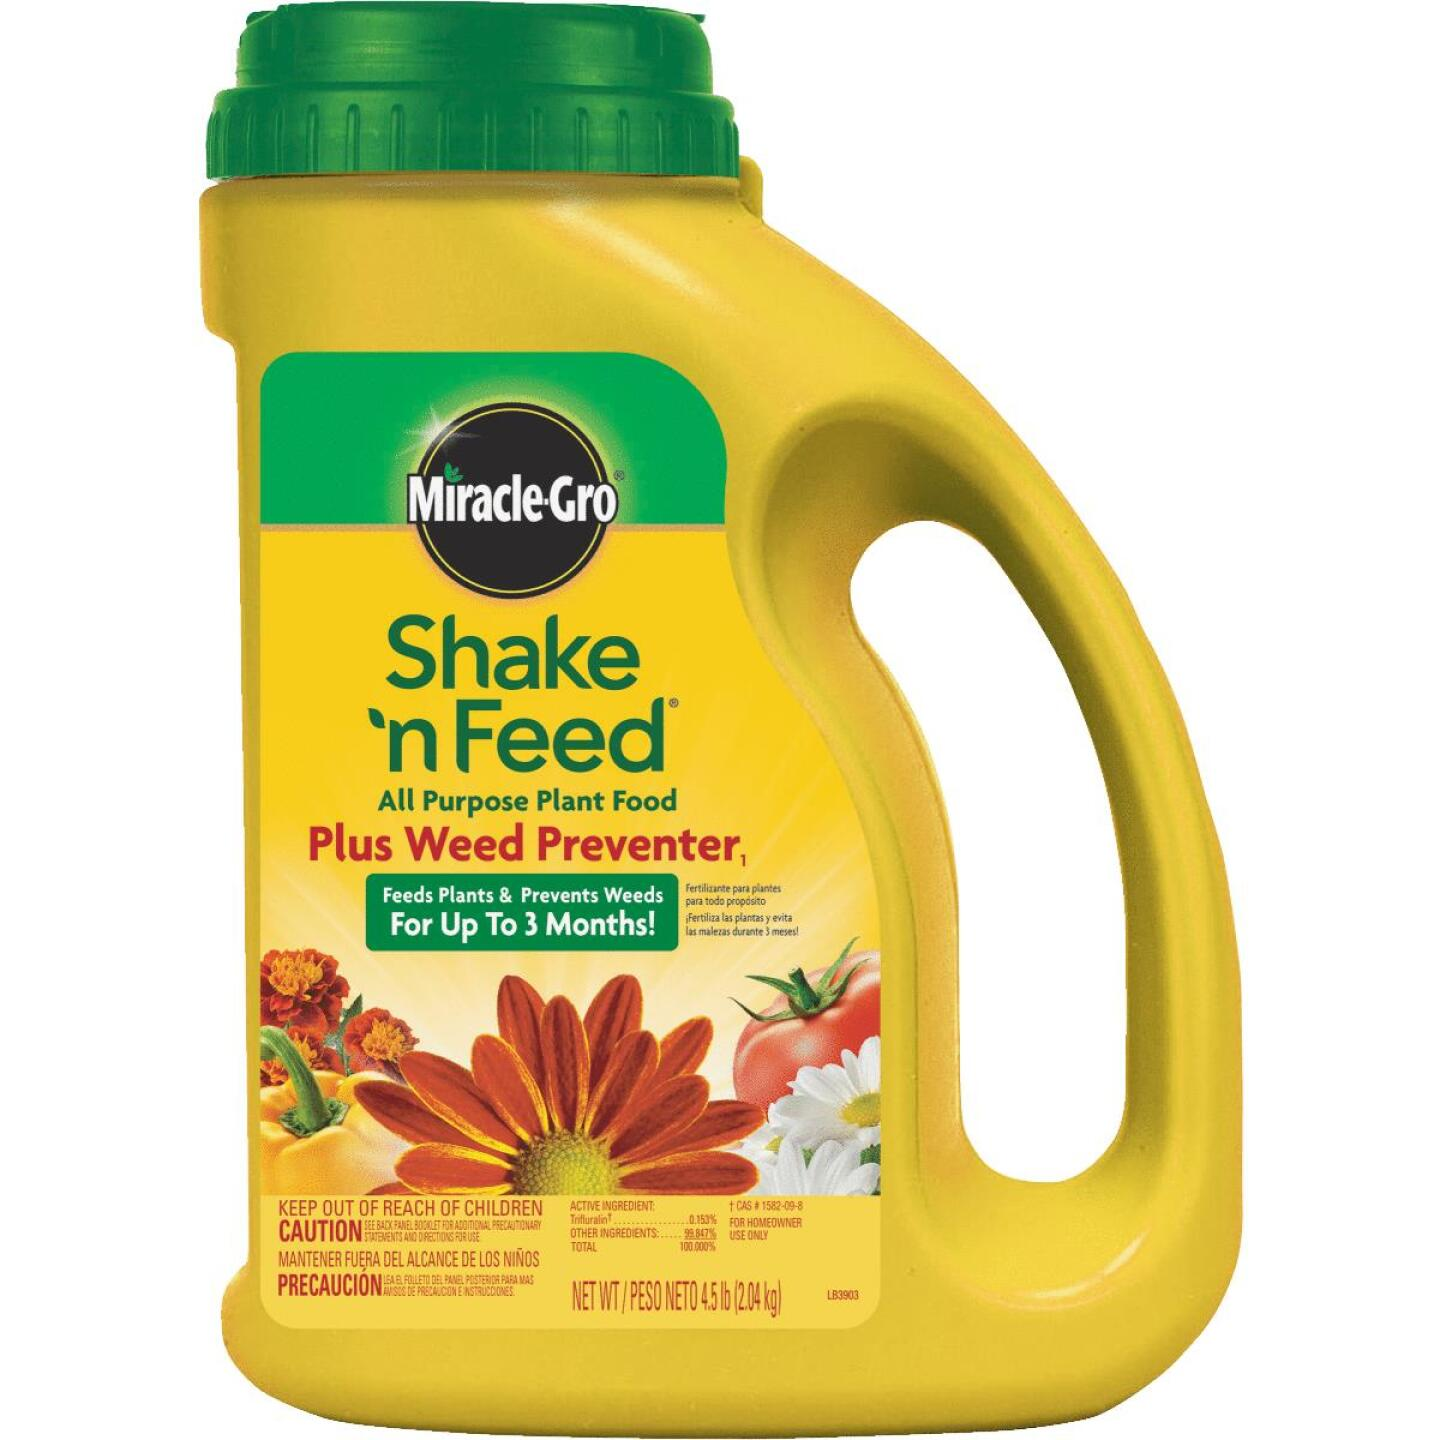 Miracle-Gro Shake N' Feed 4.5 Lb. 10-10-10 All-Purpose Dry Plant Food Plus Grass & Weed Preventer Image 1